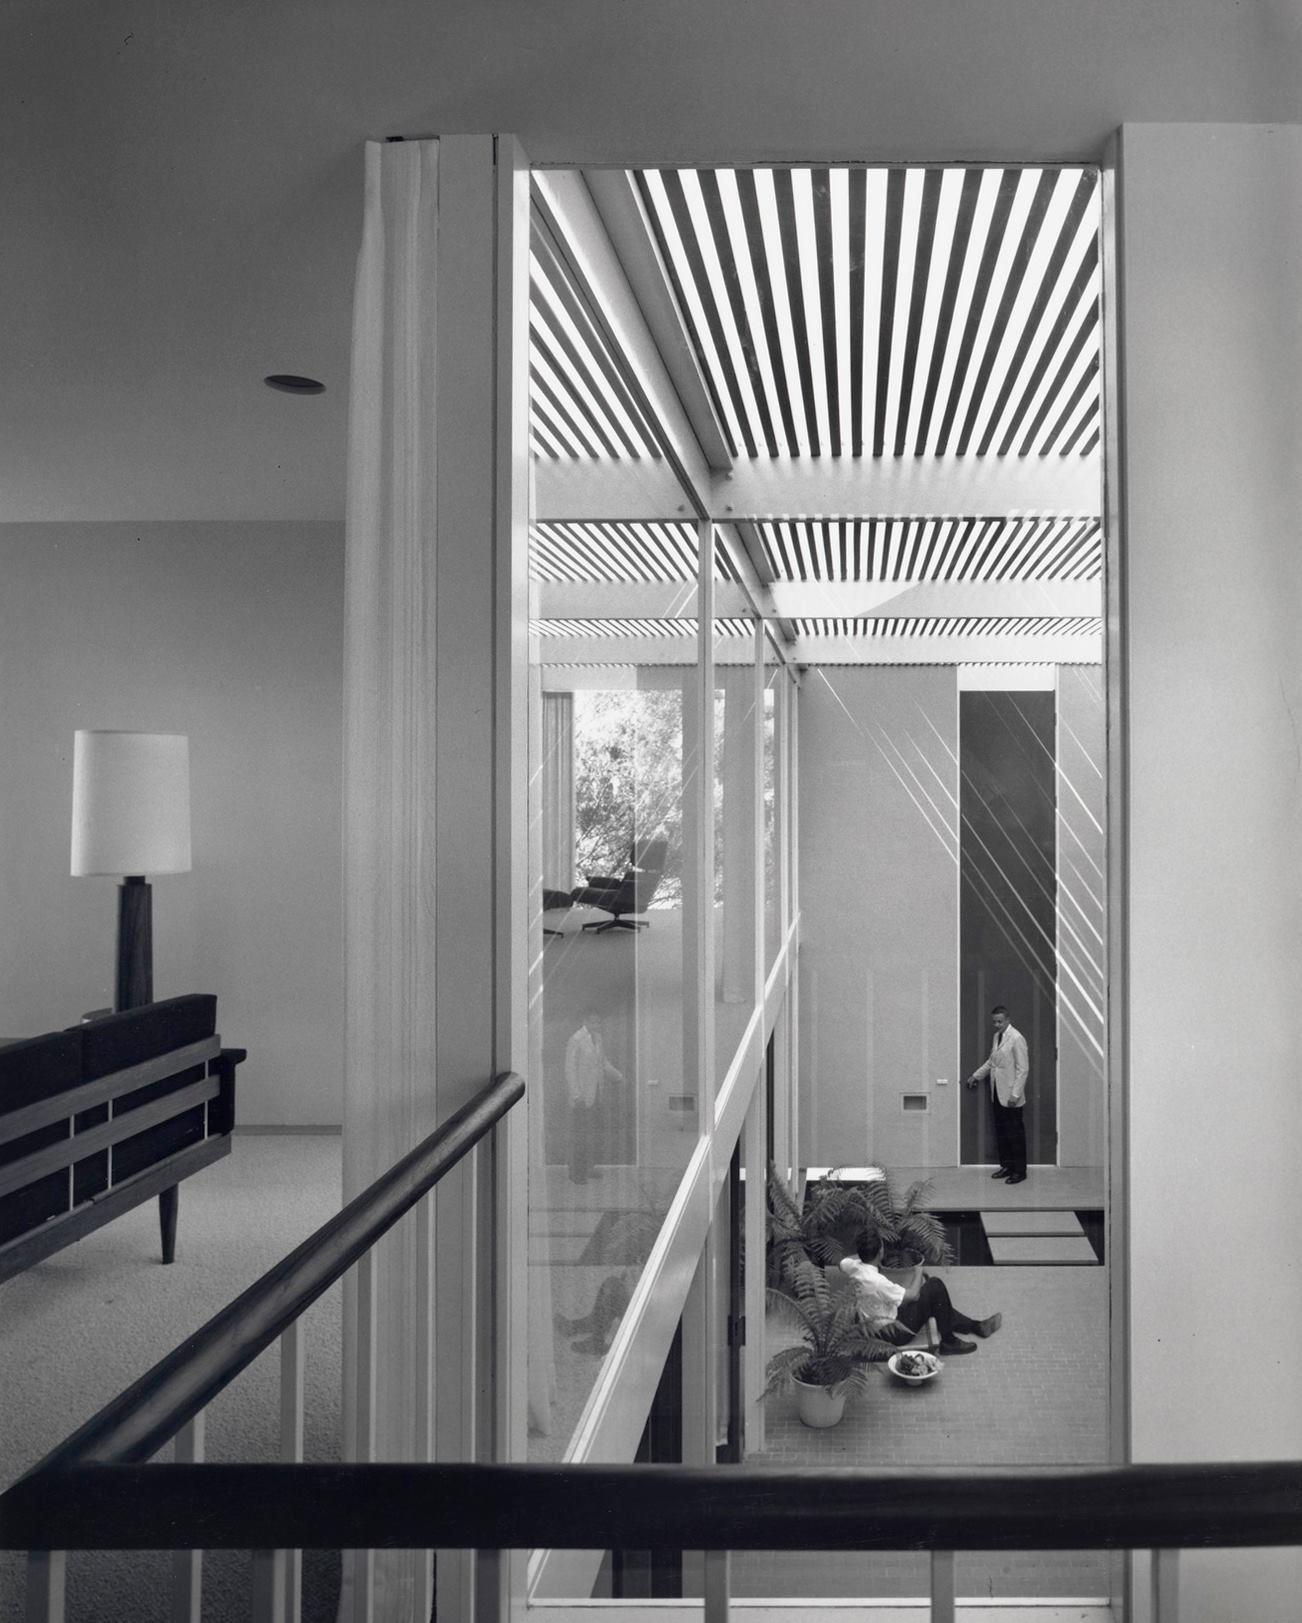 Case Study House #25 - the Frank Residence. Designed by Edward Killingsworth and located on a canal in Long Beach, California the home was completed in 1962. Photo: Getty / Shulman